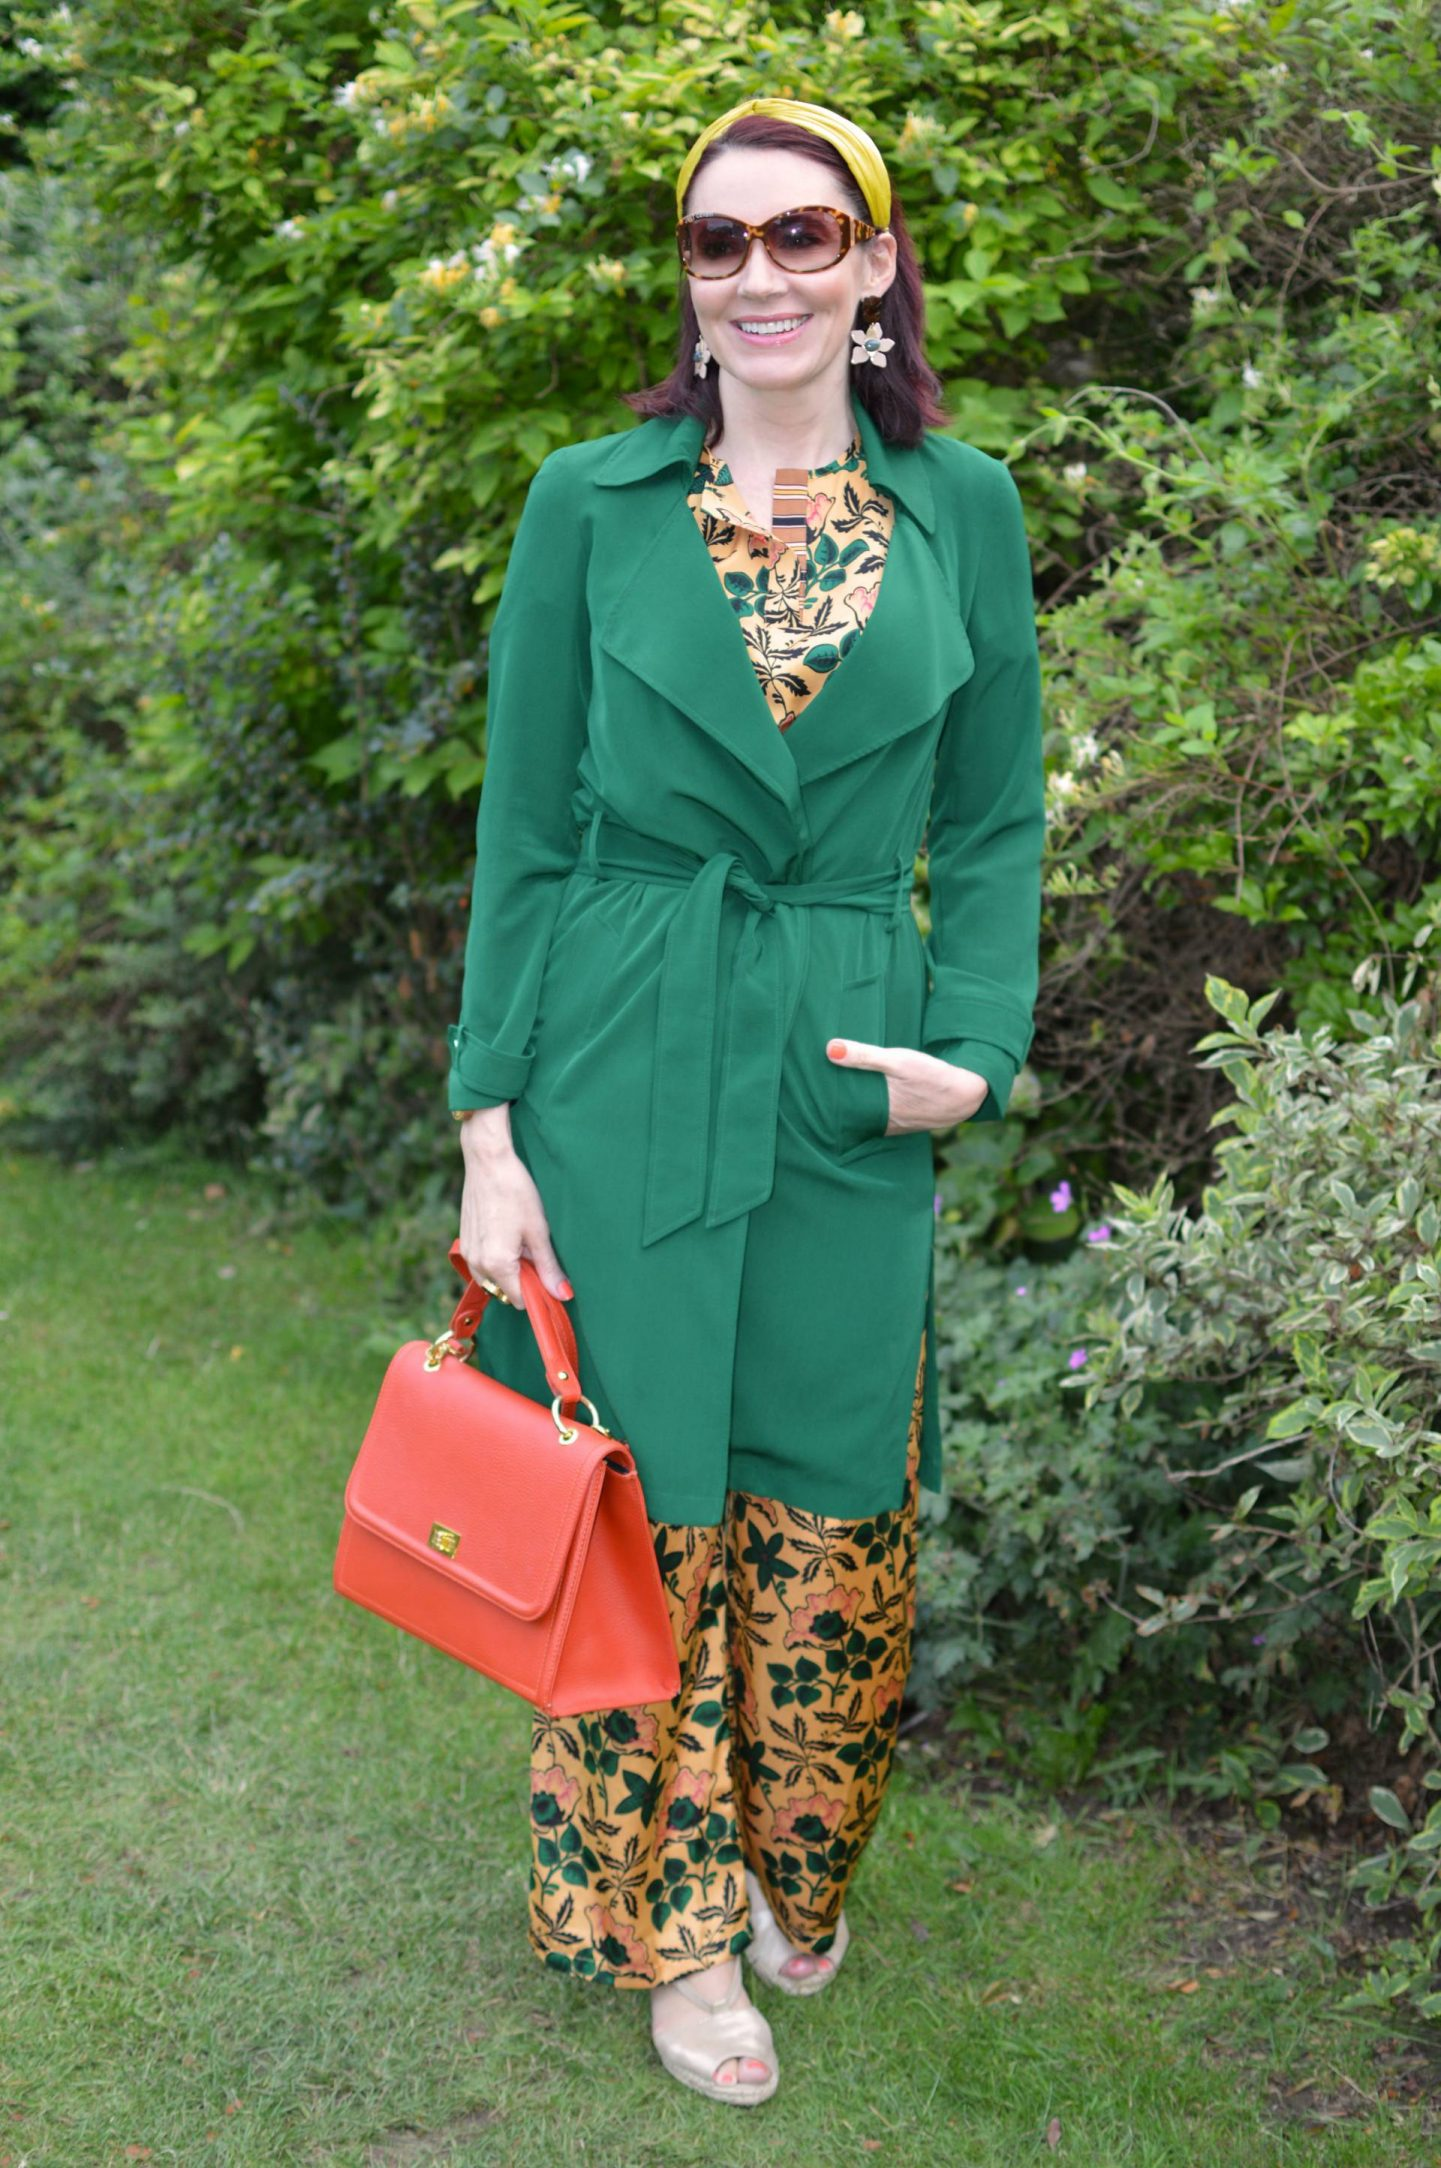 Scotch & Soda Floral Print Co-ord, green Papaya trench coat